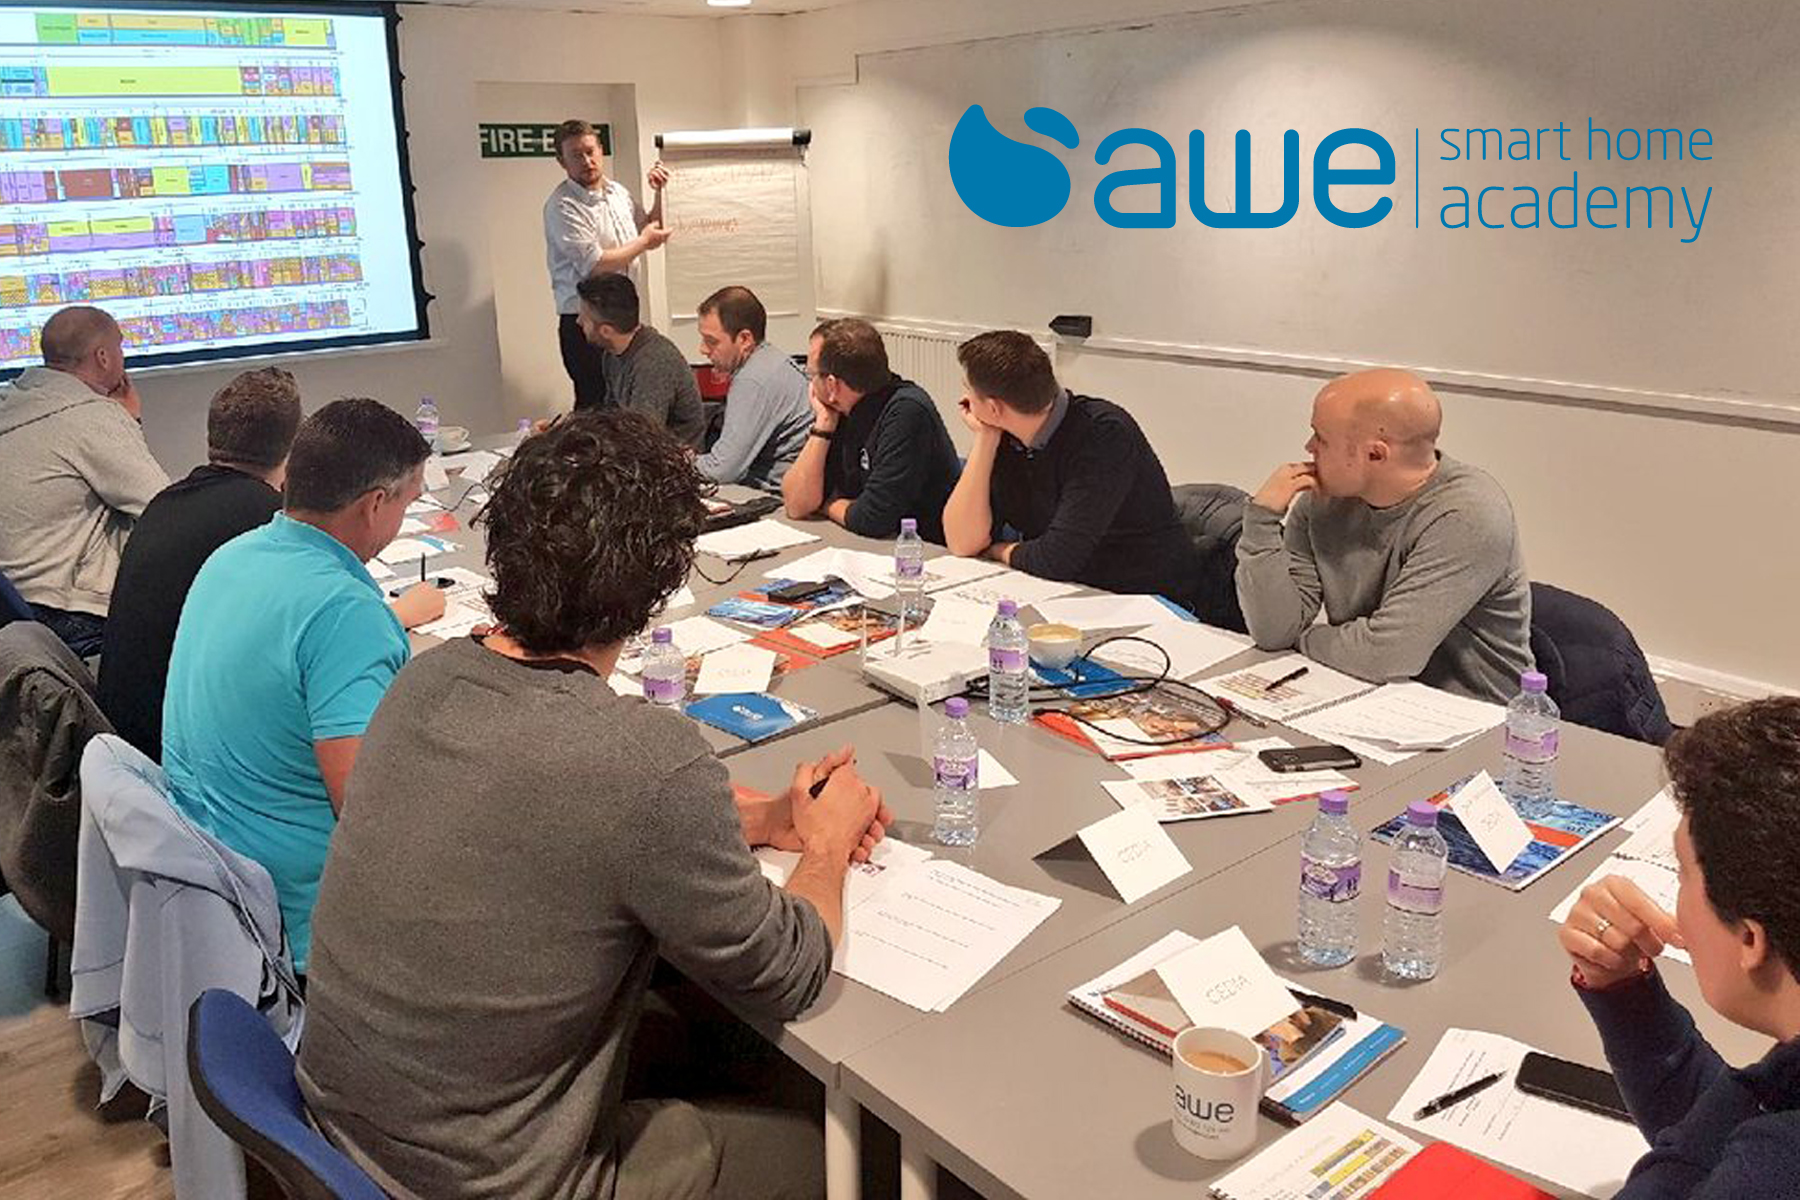 Seminar Focus at ELEX Coventry 2018: How to Become a Smart Home Installer